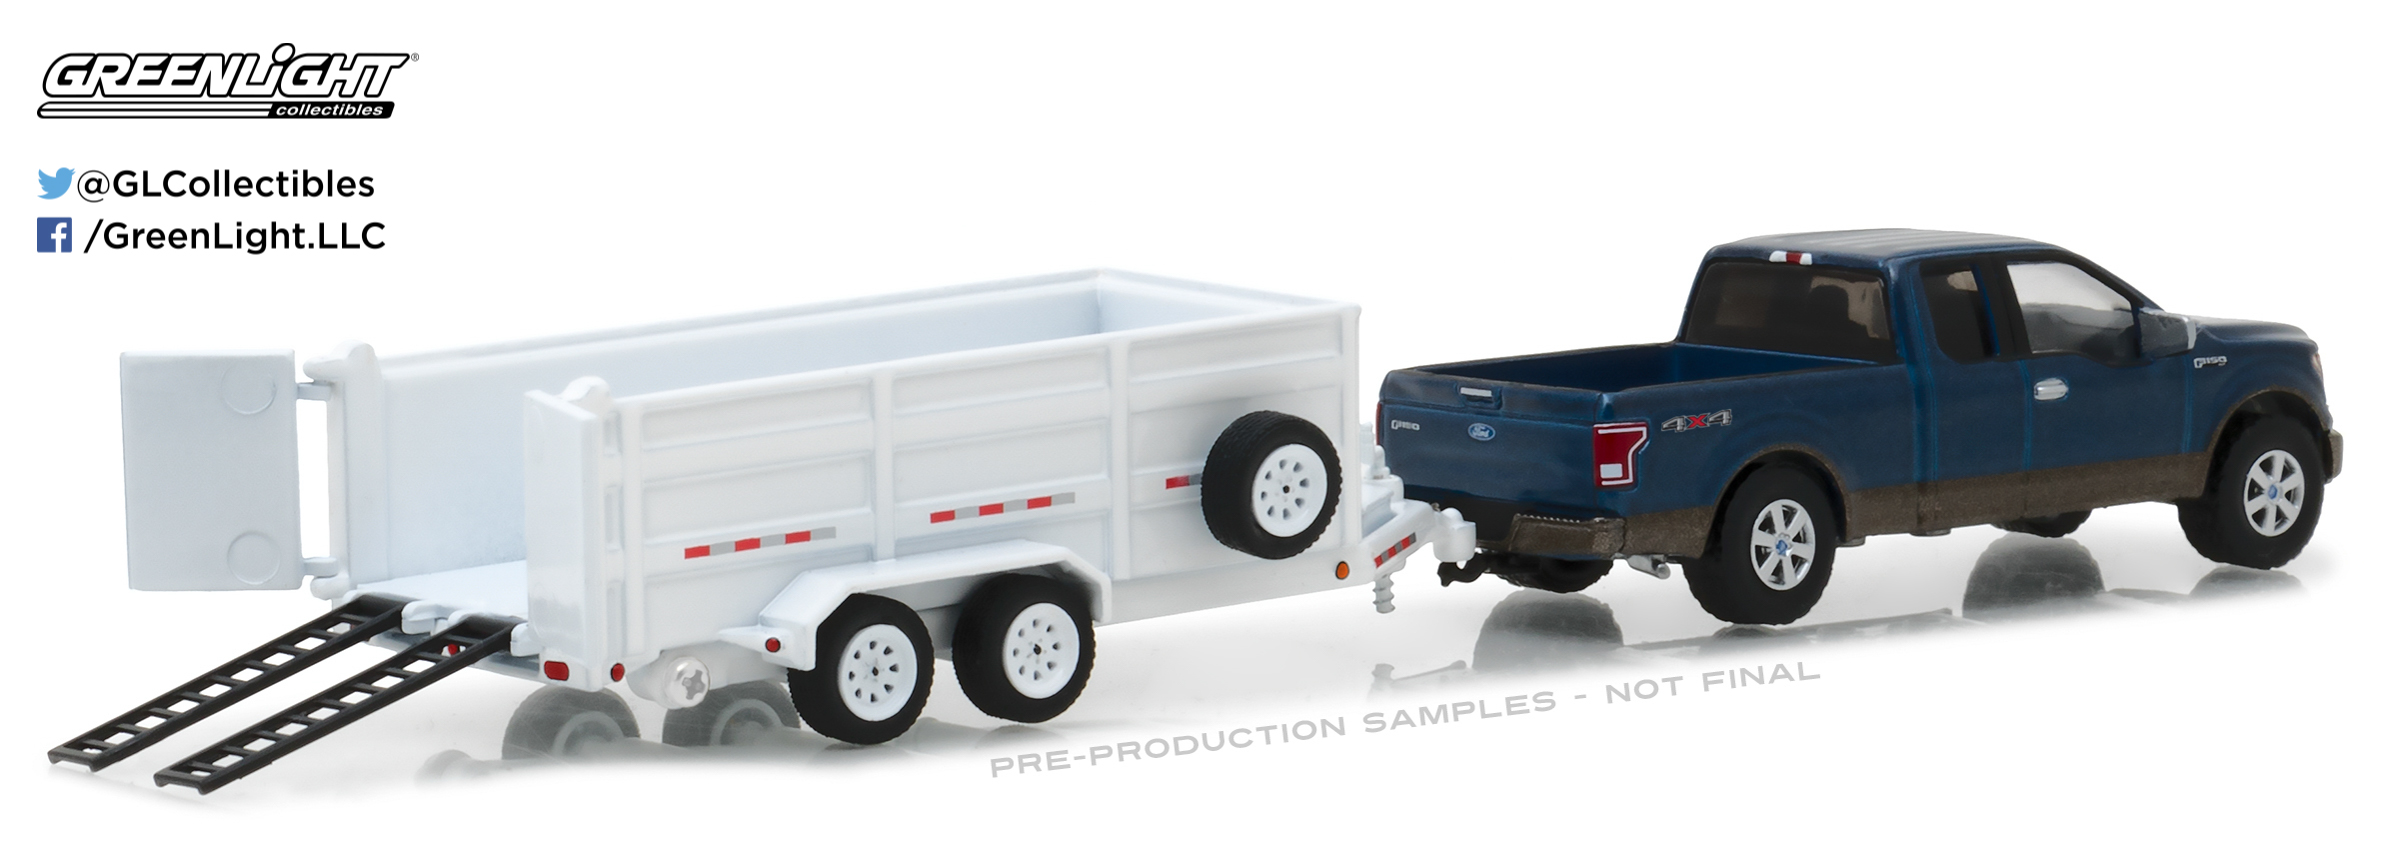 Pre Order 32120 C Greenlight Collectibles Hitch Tow Series 12 2016 Ford F 150 And Double Axle Dump Trailer on toy truck with dump trailer